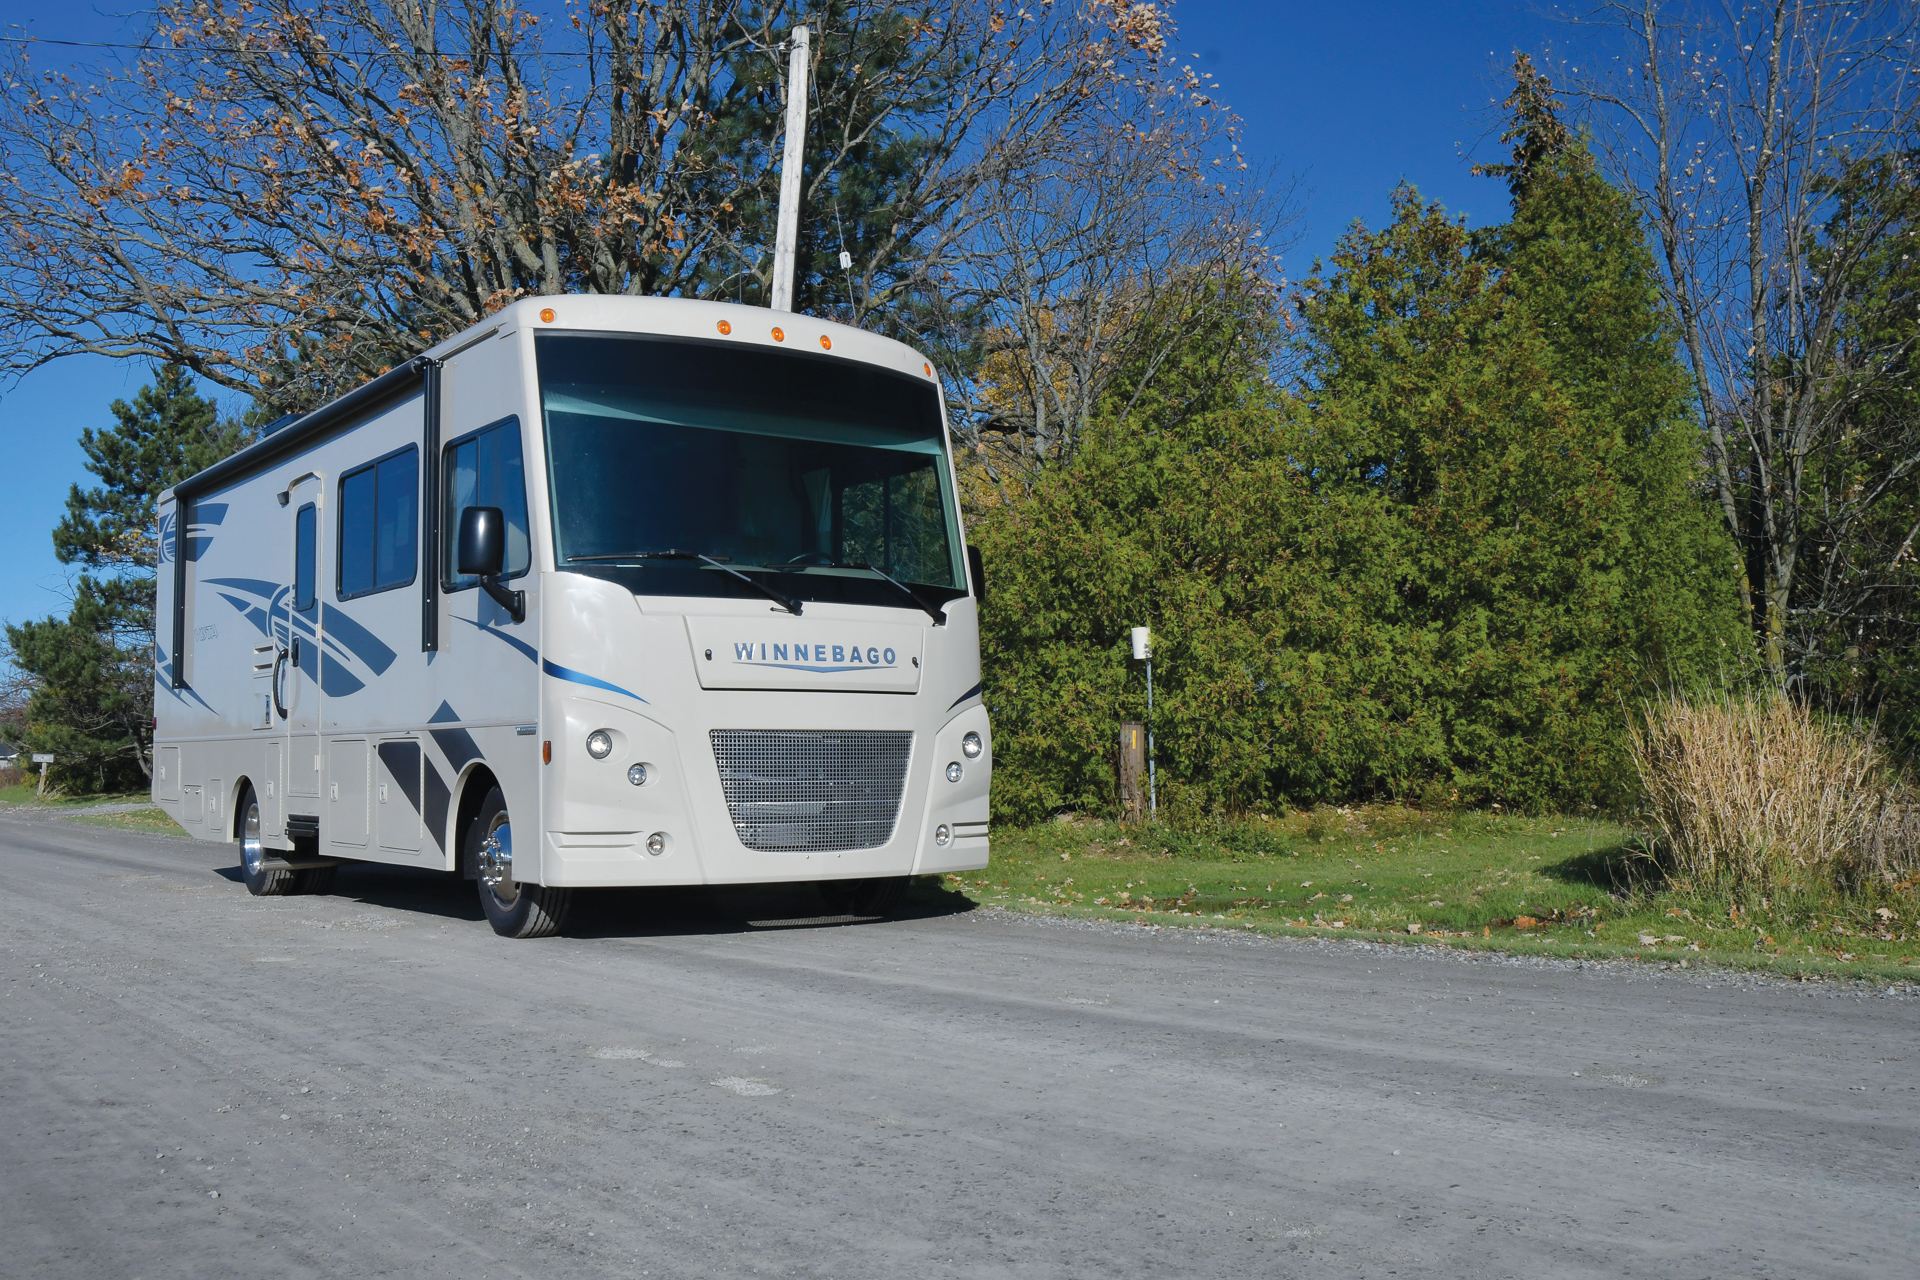 Large Winnebago RV driving in the US